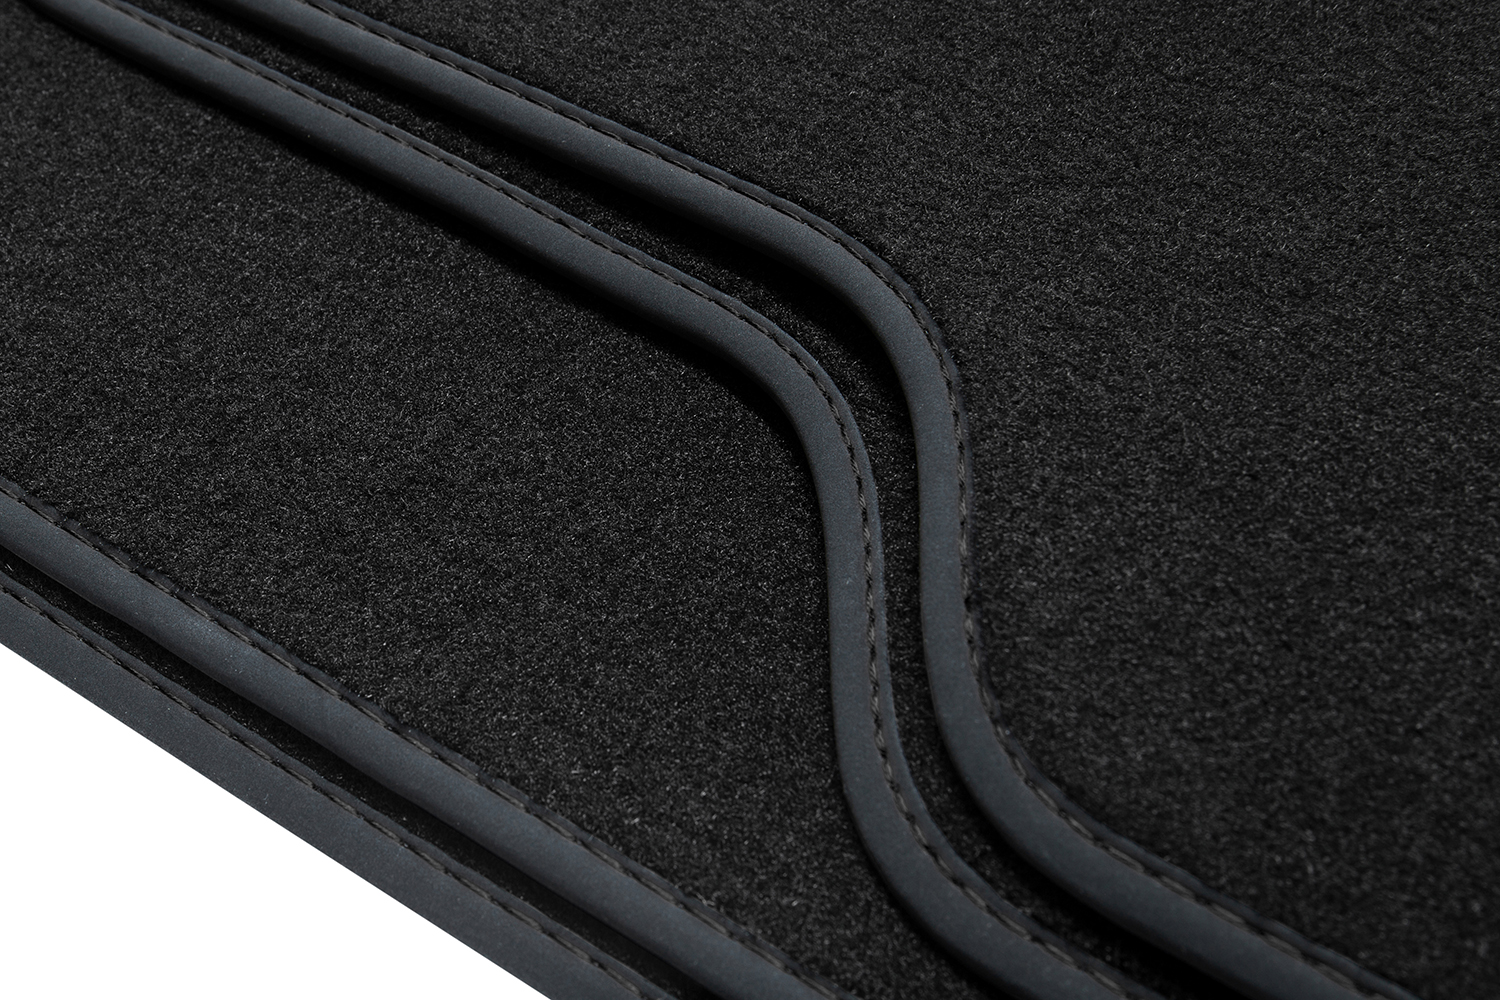 Mercedes Benz Floor Mats >> Premium Floor Mats Fits For Mercedes Benz Gle Coupe Typ C292 From 2015 L H D Only